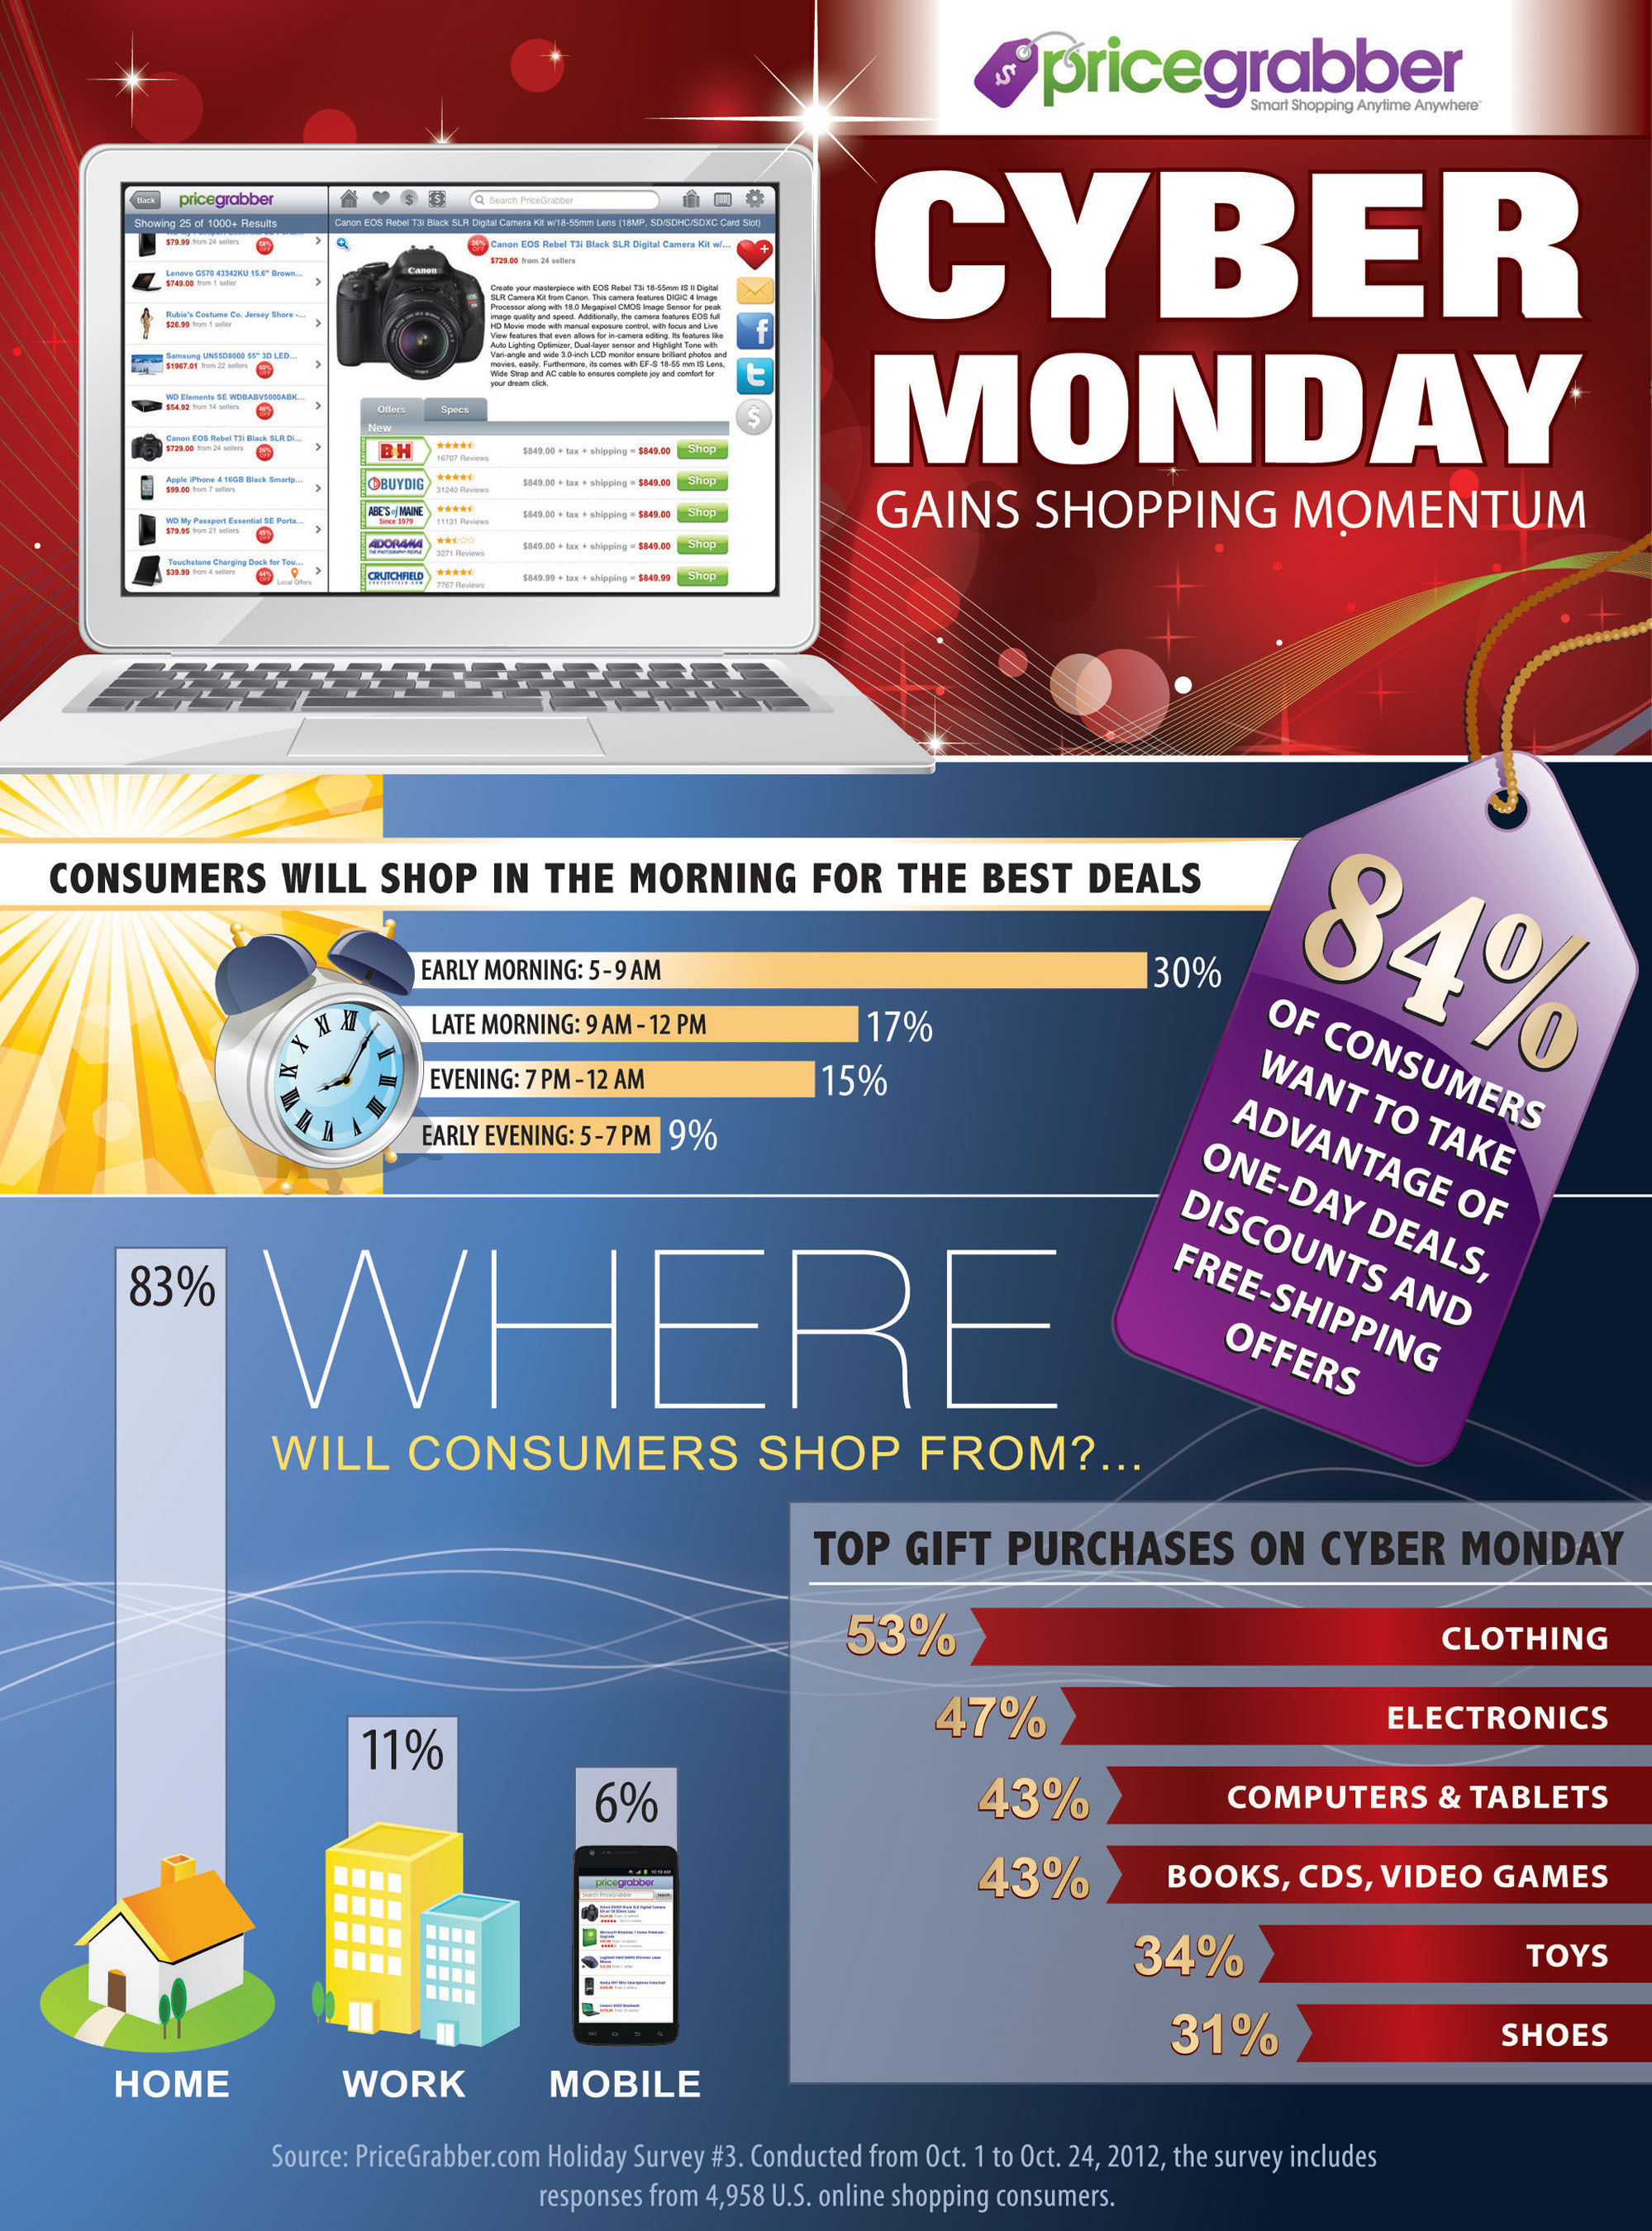 Cyber Monday gains popularity as a top holiday shopping day, according to PriceGrabber® survey